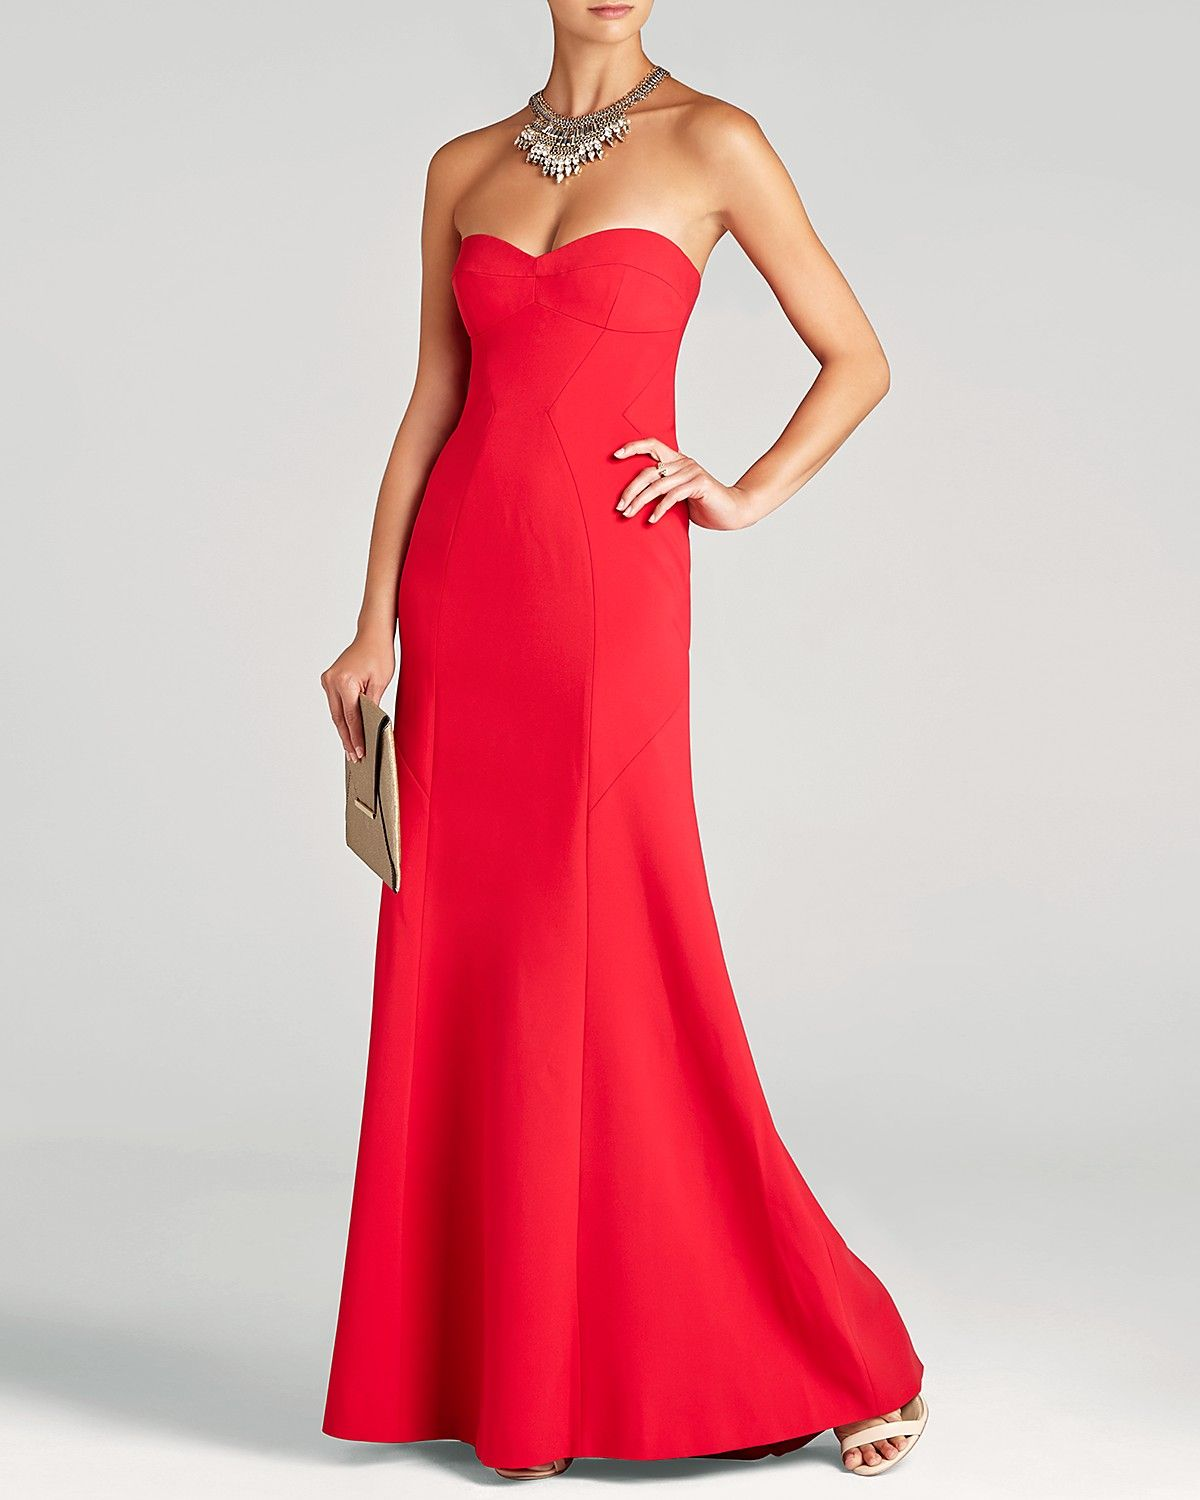 Bcbgmaxazria Surrey Strapless Gown Bloomingdale S Exclusive Women Dresses Bloomingdale S Red Evening Dress Gowns Dresses [ 1500 x 1200 Pixel ]